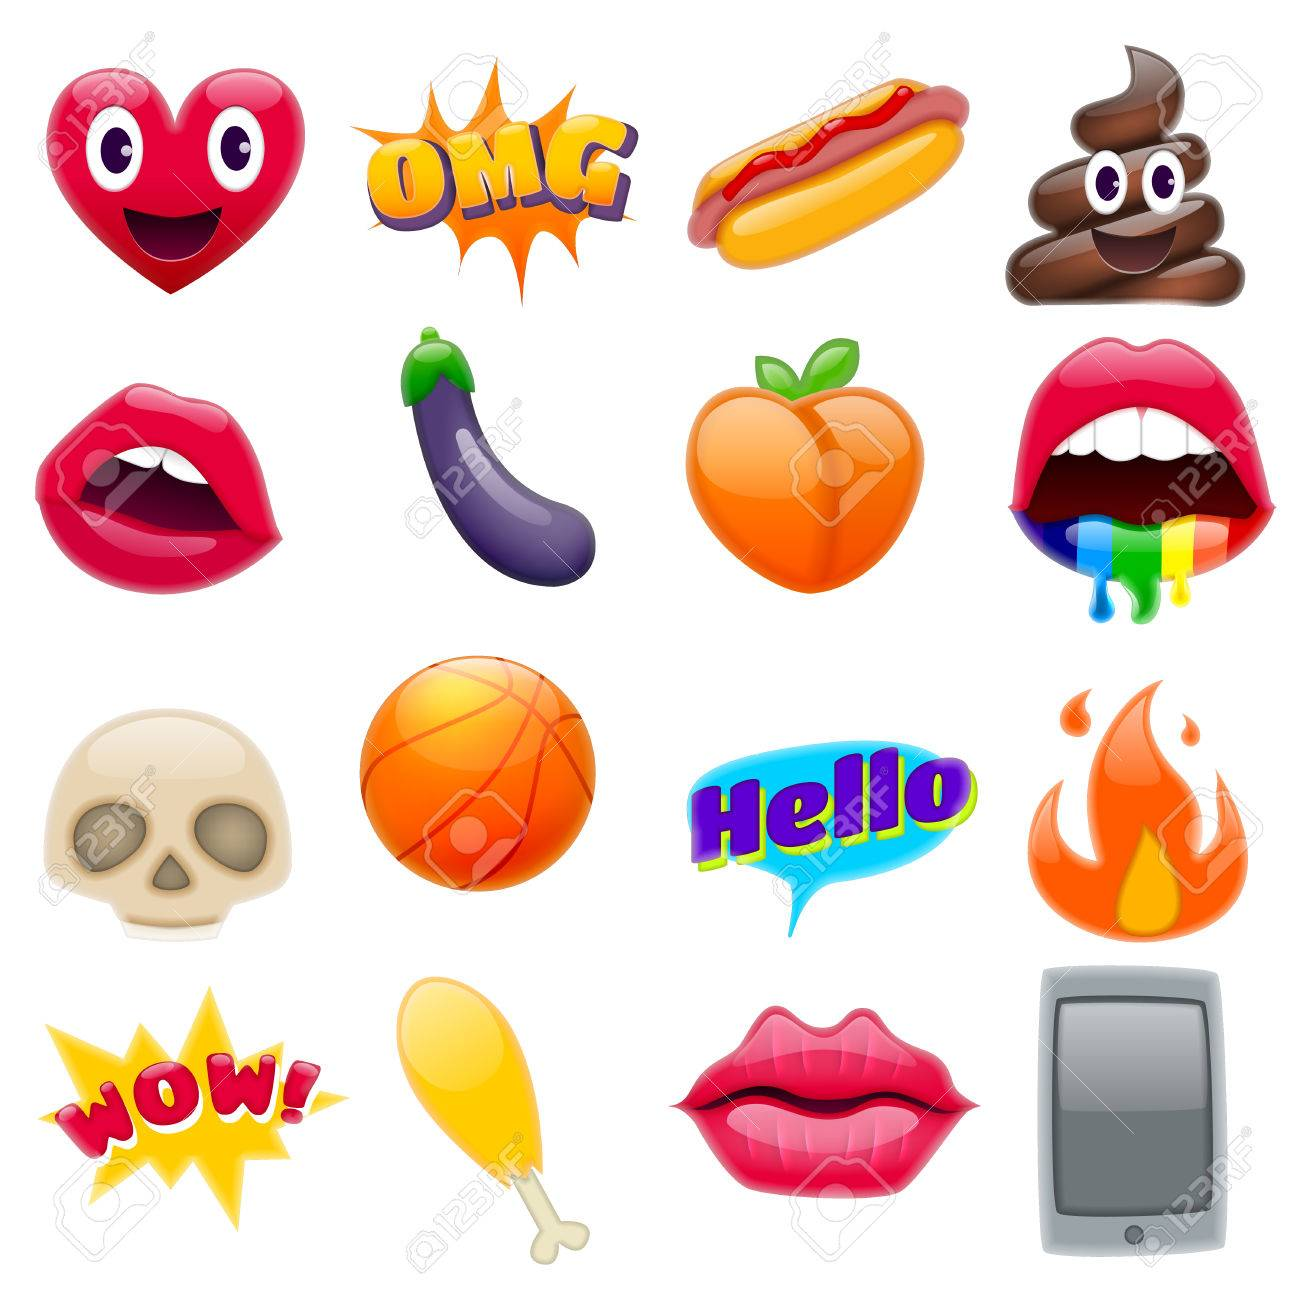 Set of Fantastic Smile Emoticons, Emoji Design Set. Bright Icons of Lips. Fire, Hello Expression, Cellphone, Eggplant, Peach, Hot Dog, Chicken Leg, Skulls. Stickers and Patches - 75401573